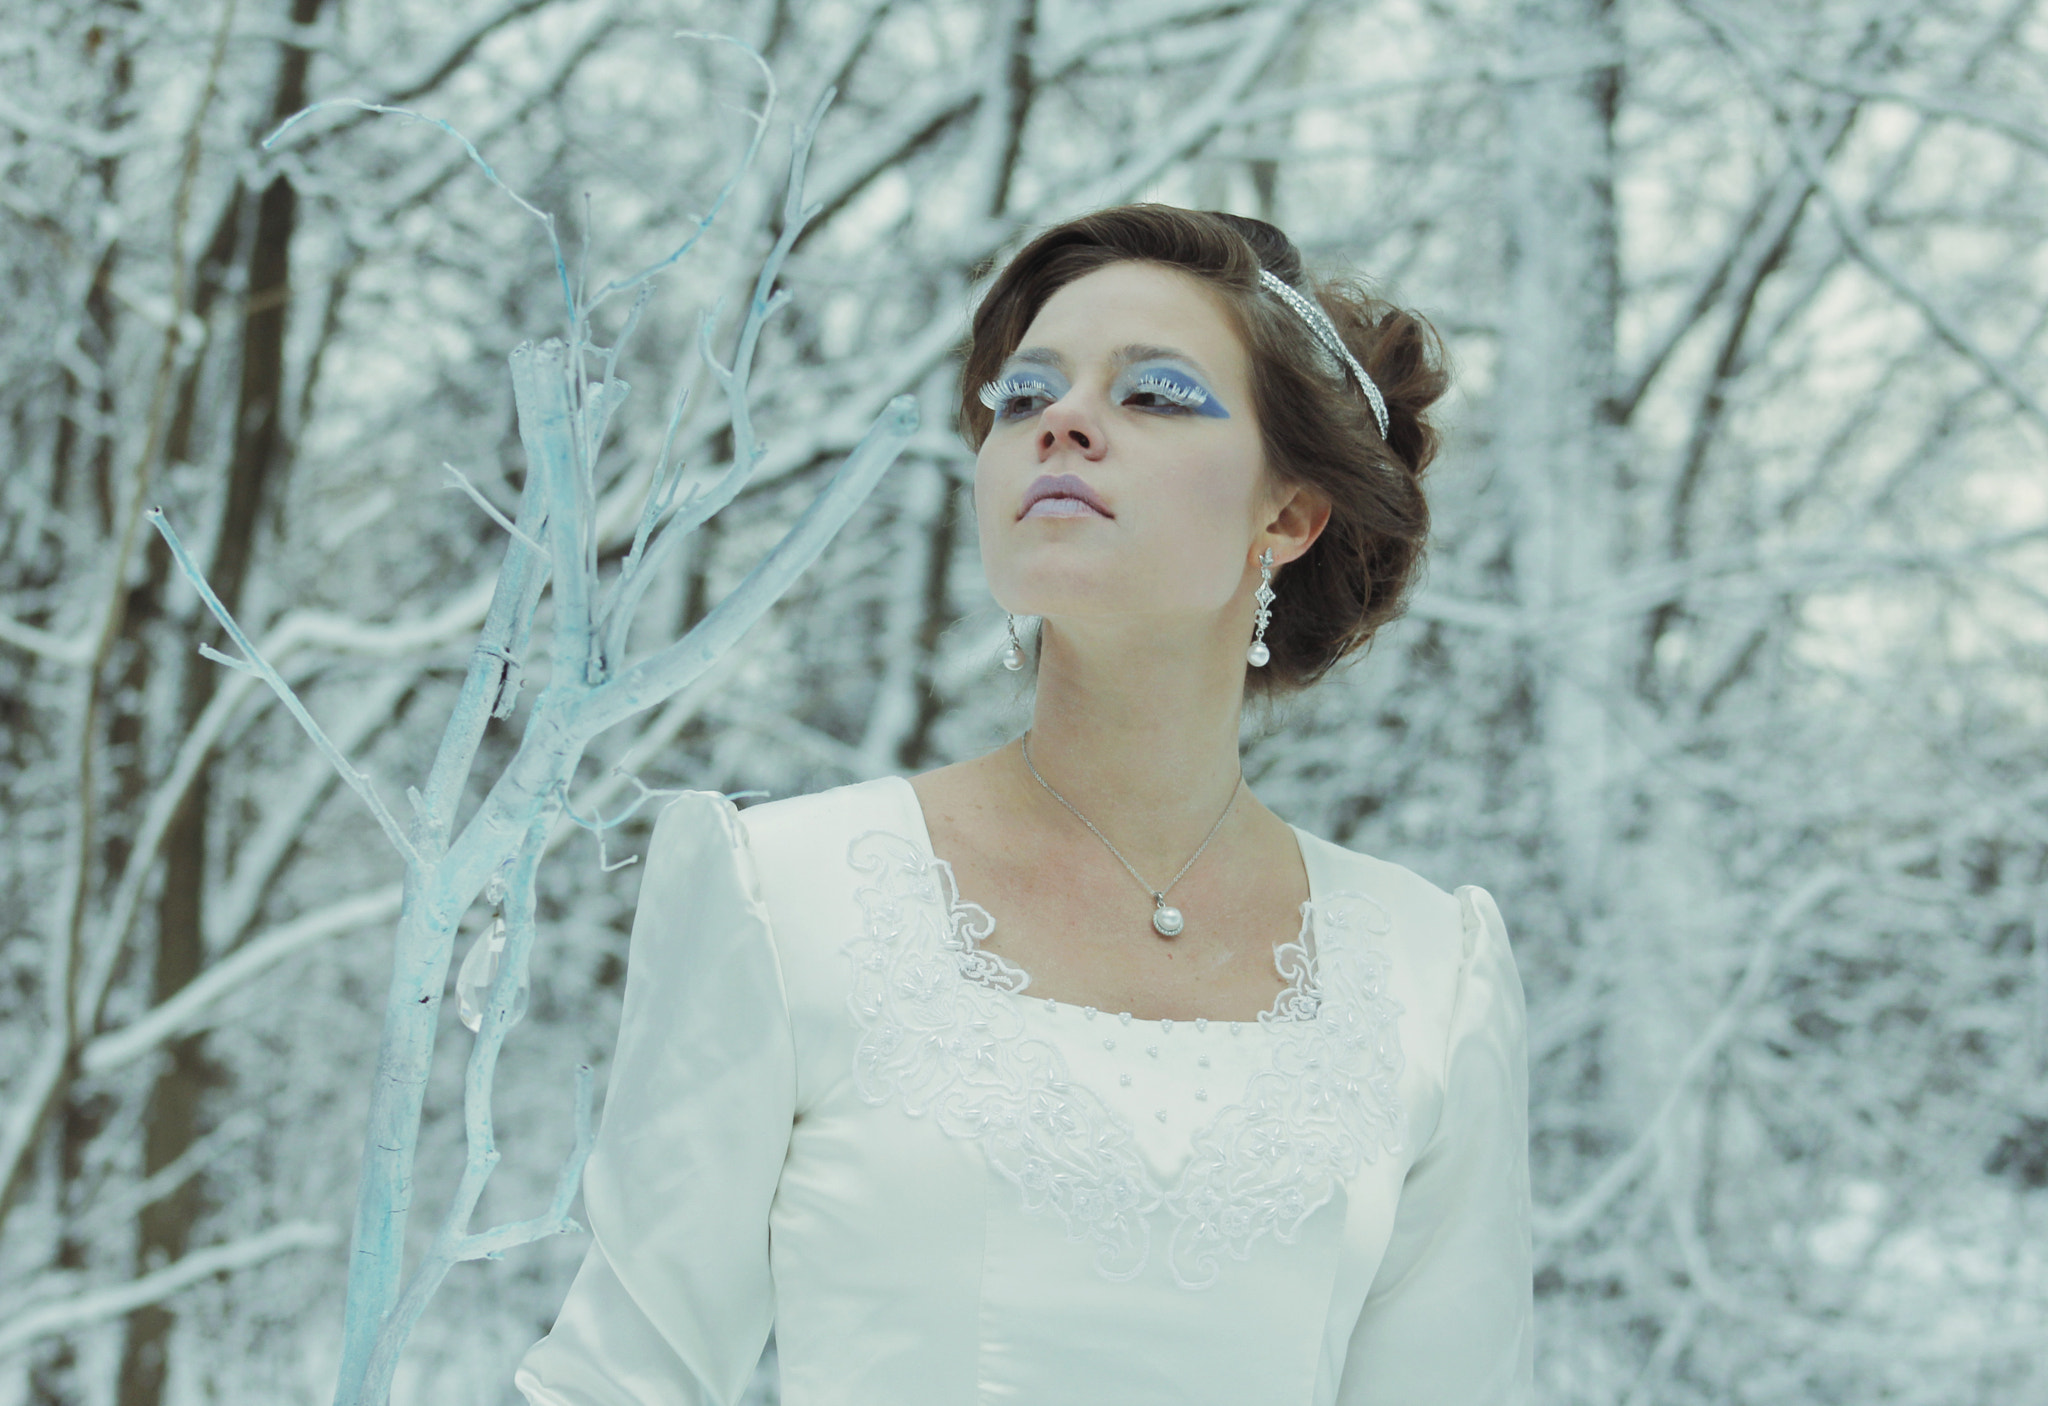 Photograph Snow Queen by Mistery Lady on 500px